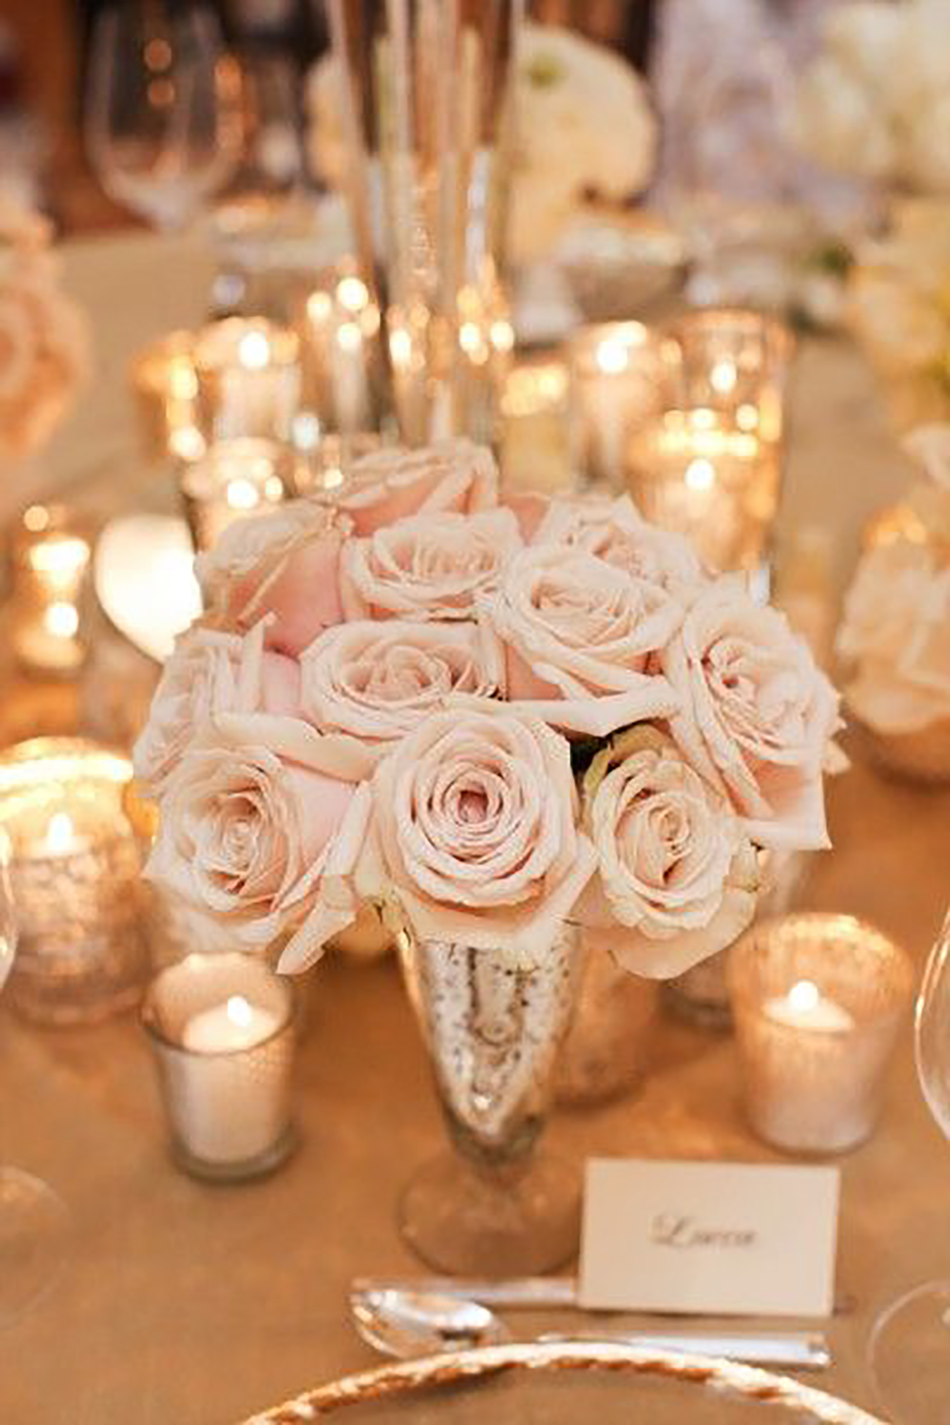 Wedding ideas by colour: pastel pink flowers